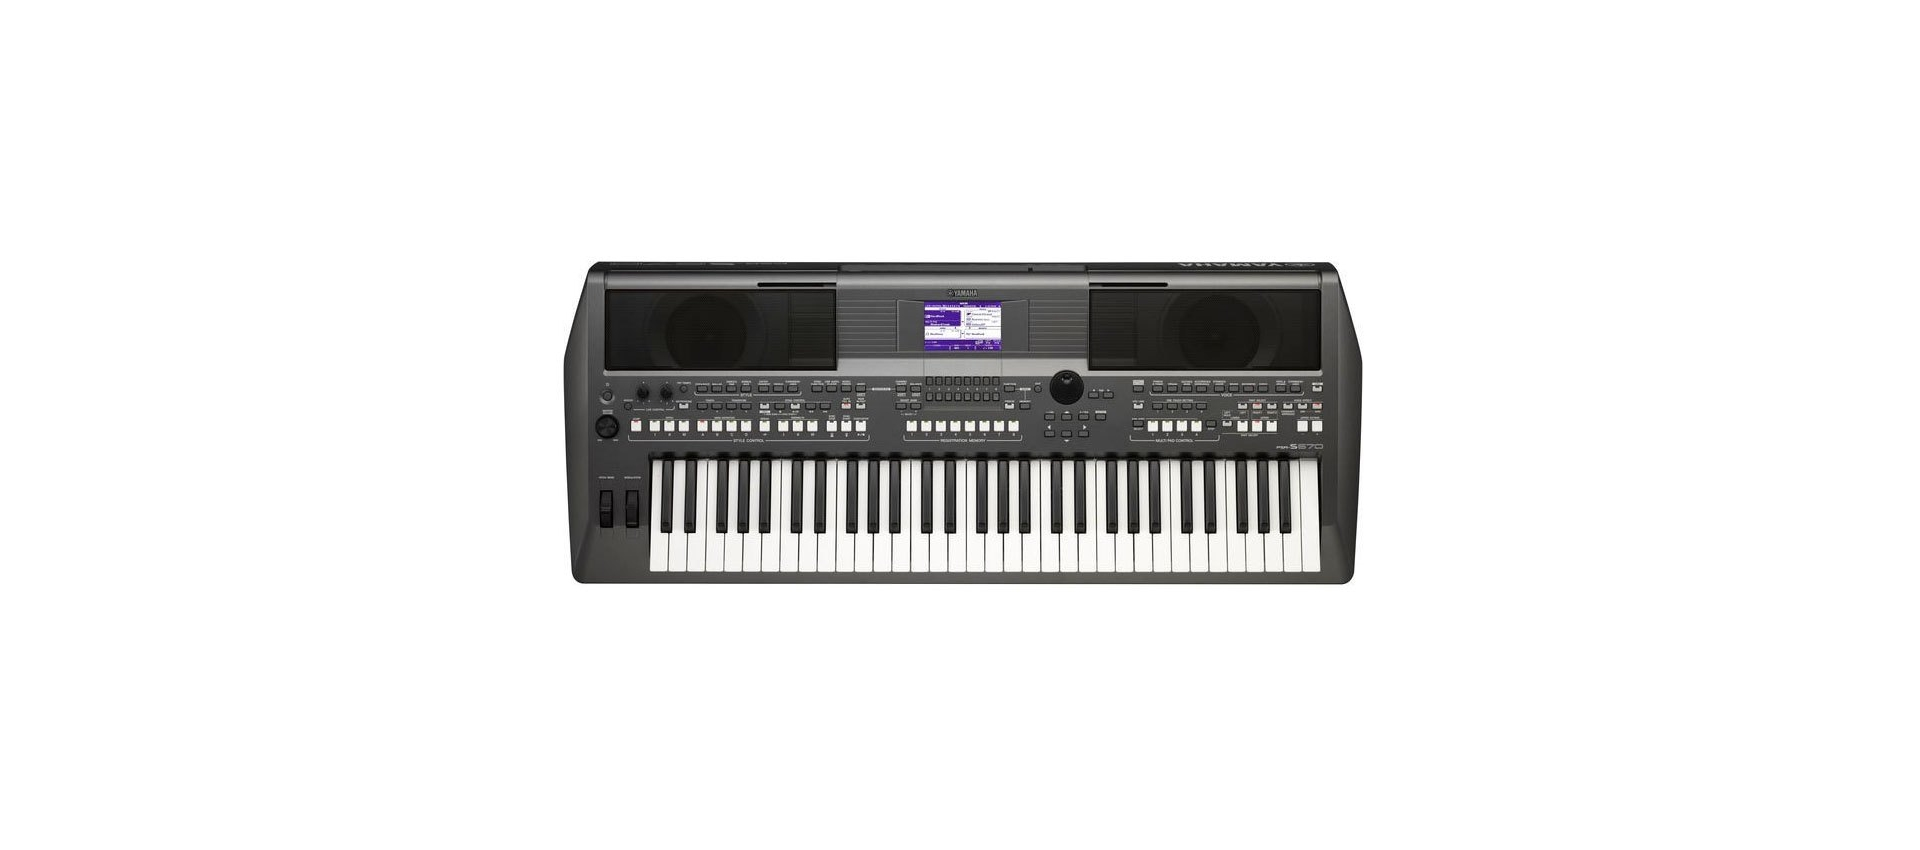 Yamaha psr s670 digital keyboard luckymusic for Yamaha professional keyboard price